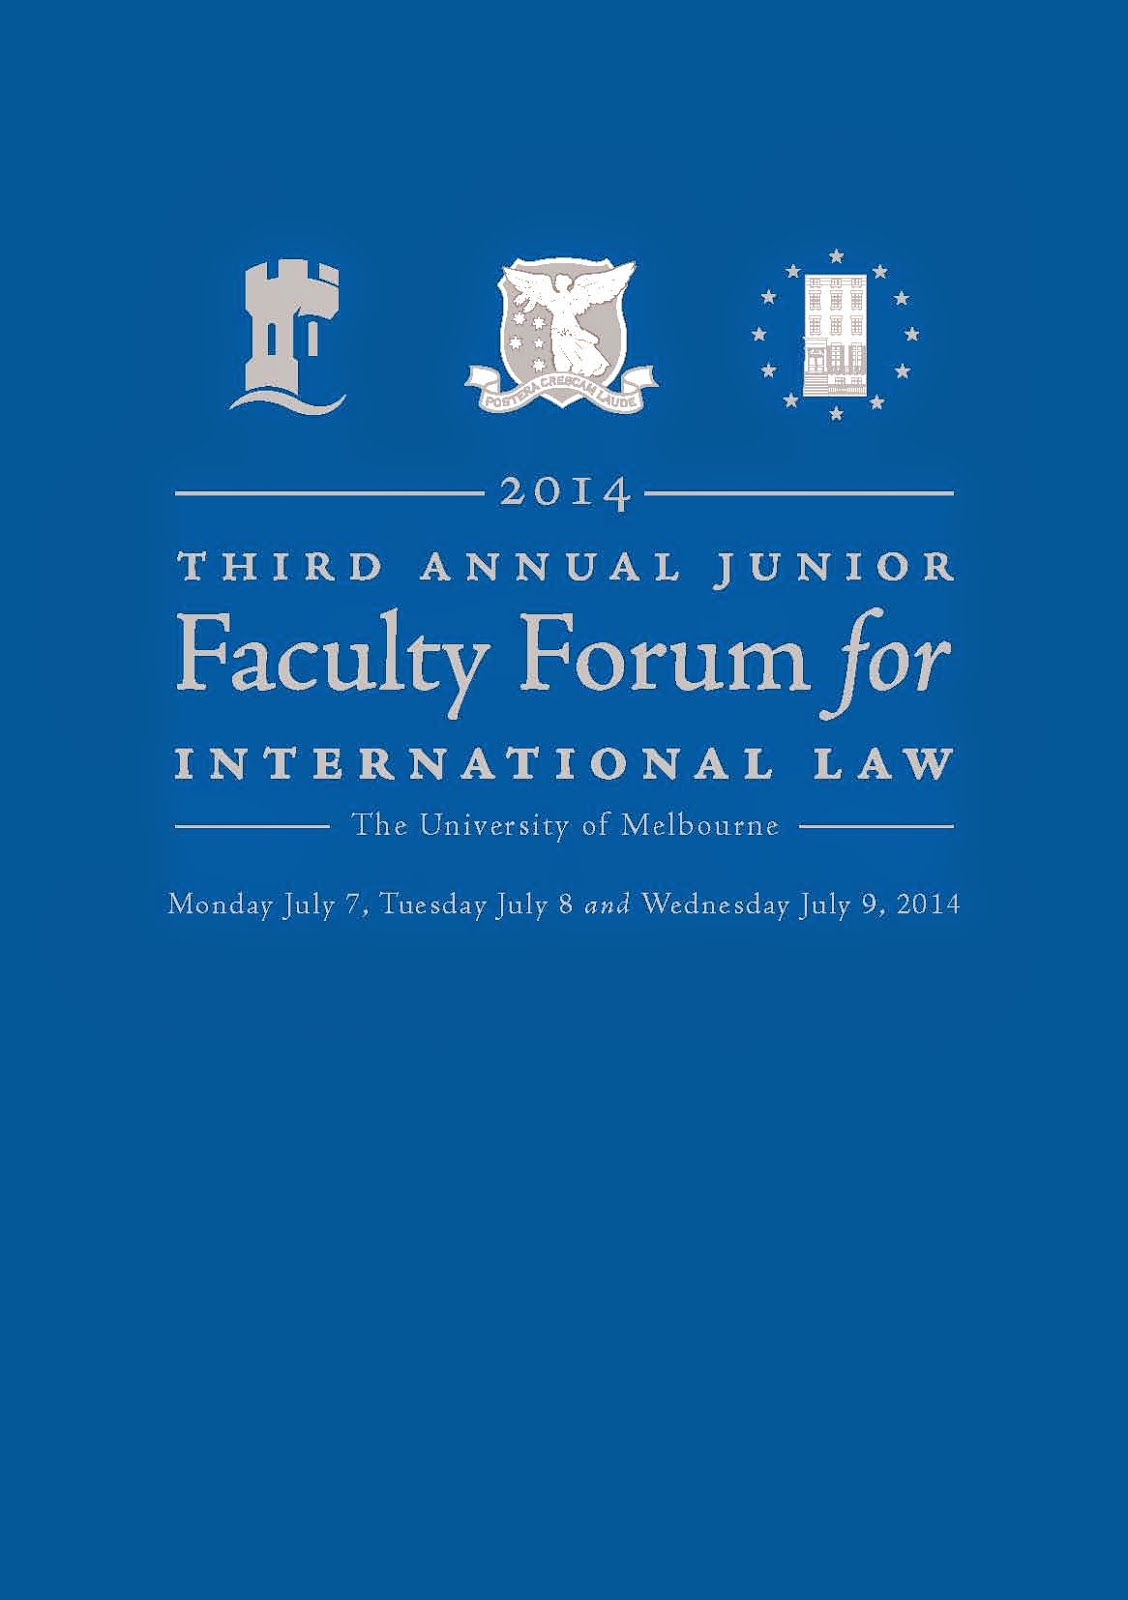 international law 4 essay About the coursethis is a part-time degree offered over two academic years, involving both distance learning and summer schools it is designed for lawyers and other human rights professionals who wish to pursue advanced studies in international human rights law.